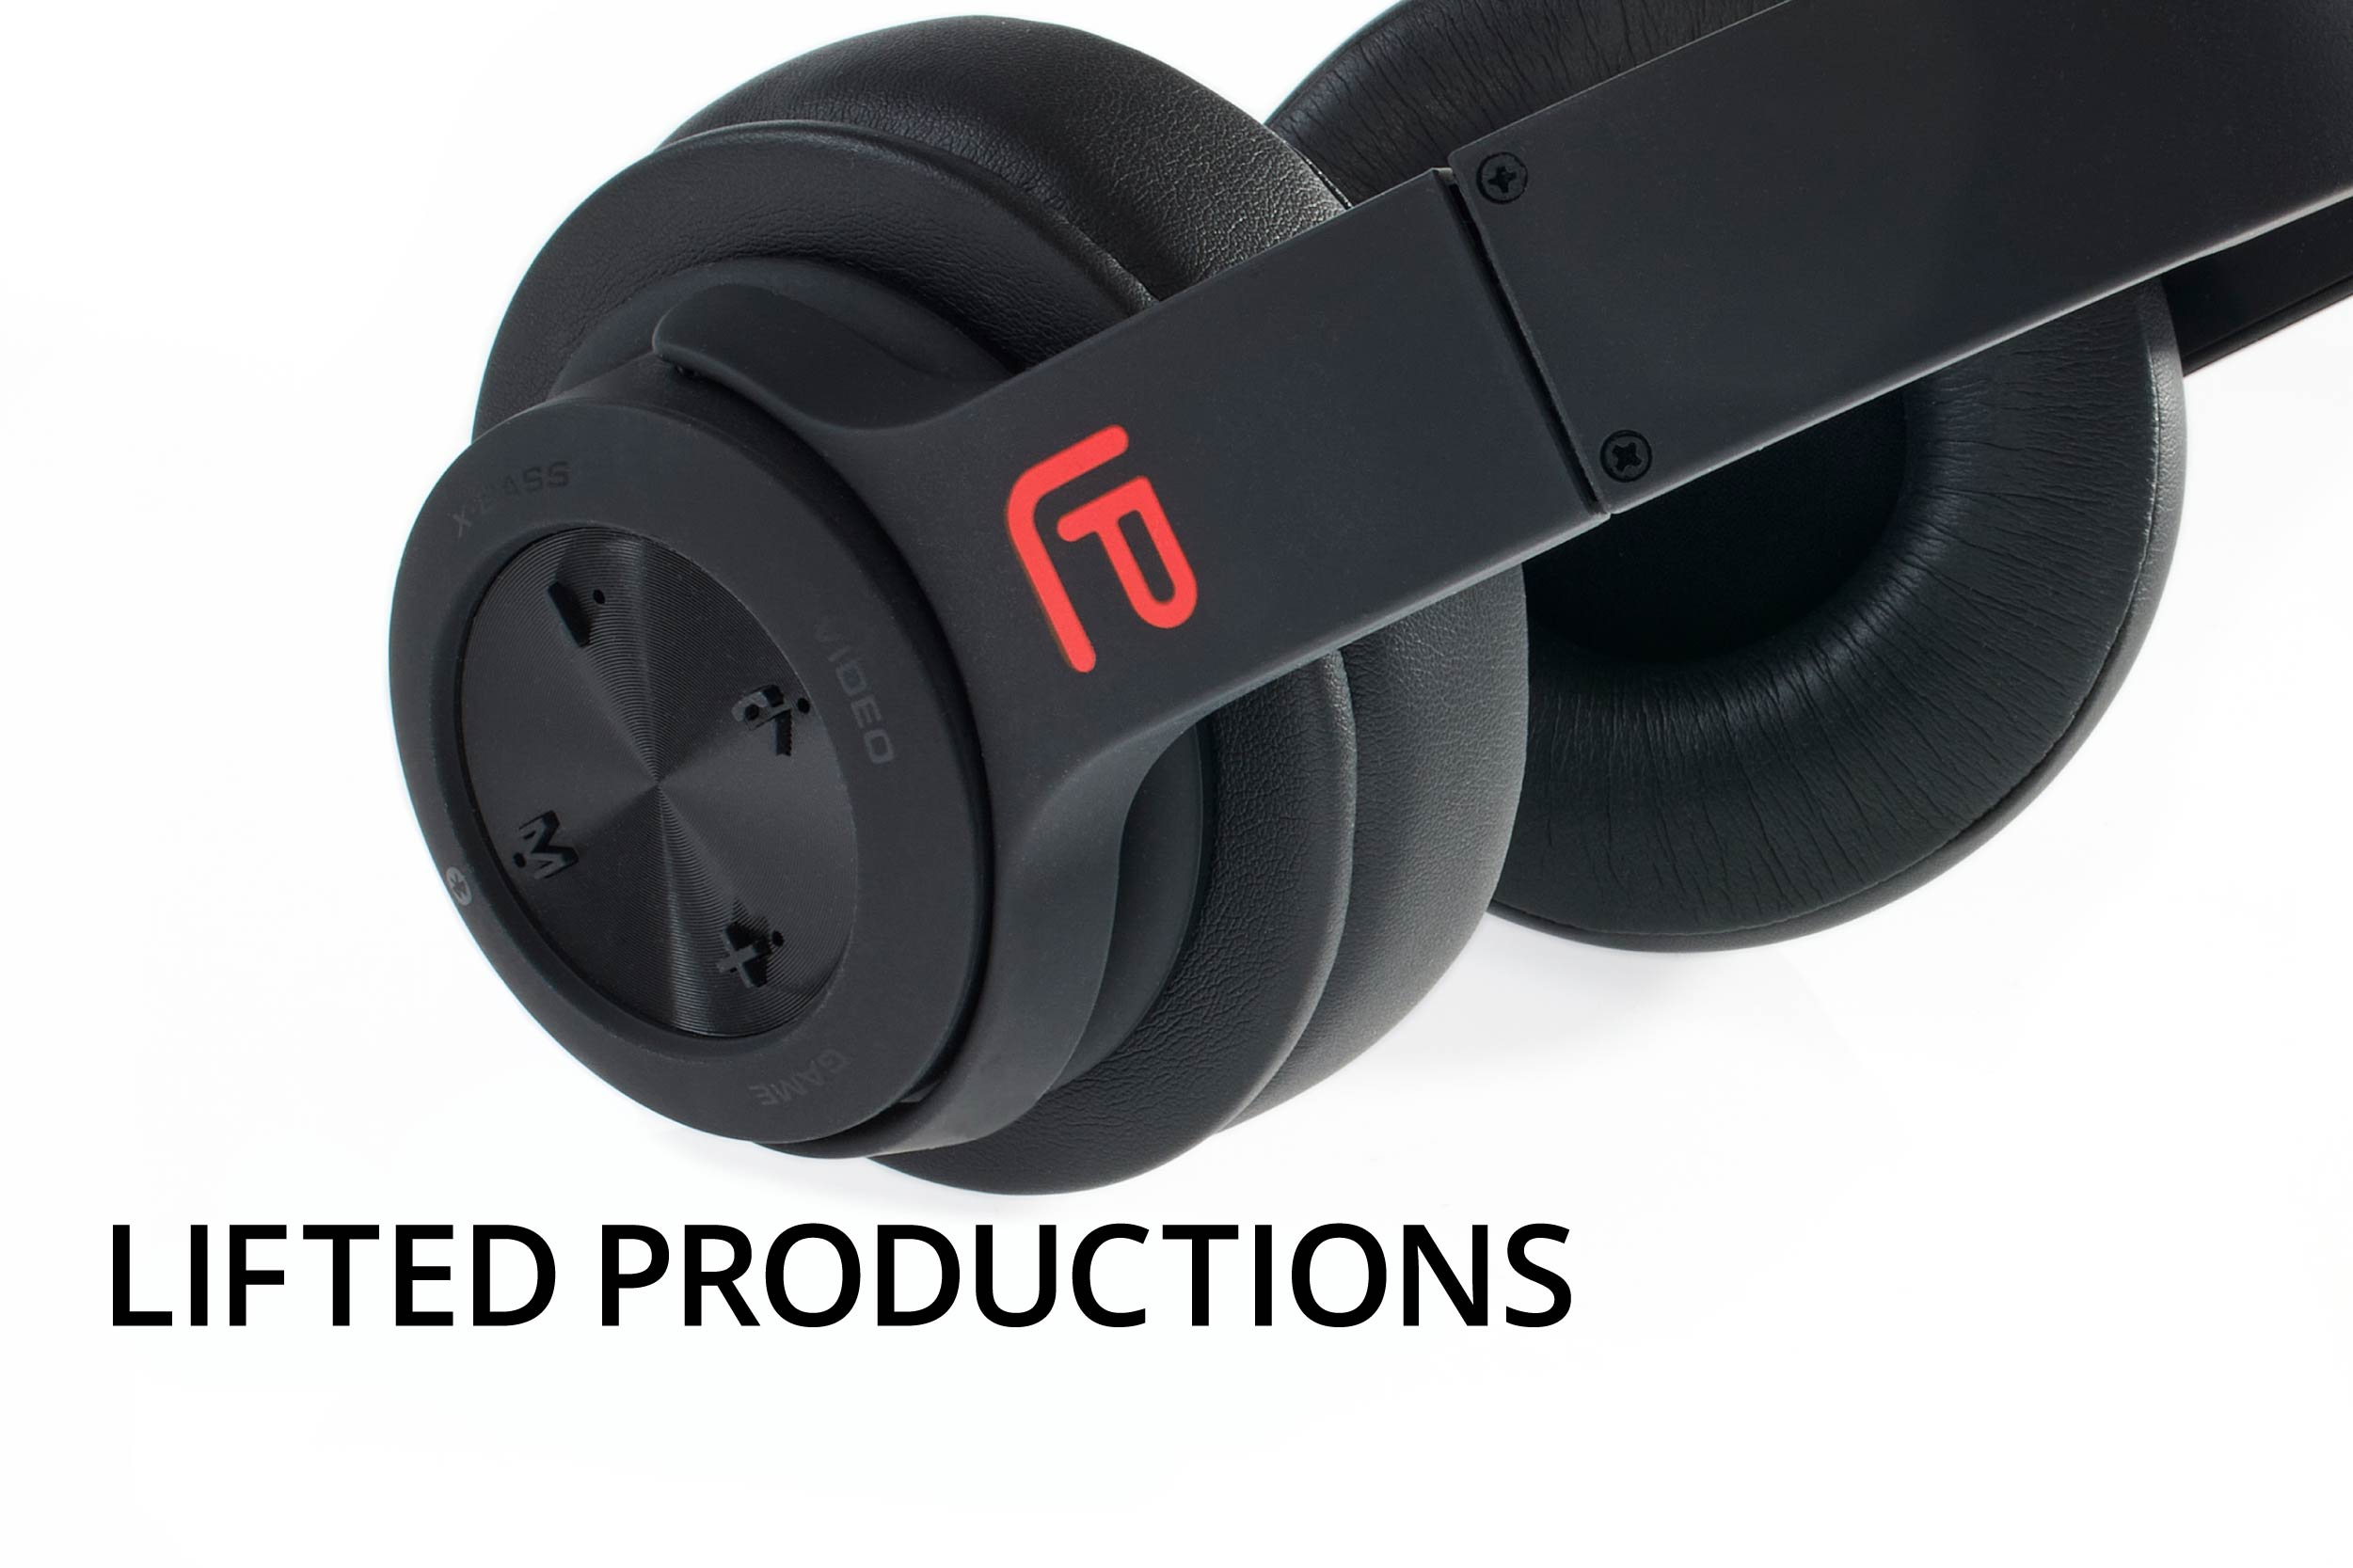 LIFTED PRODUCTIONS